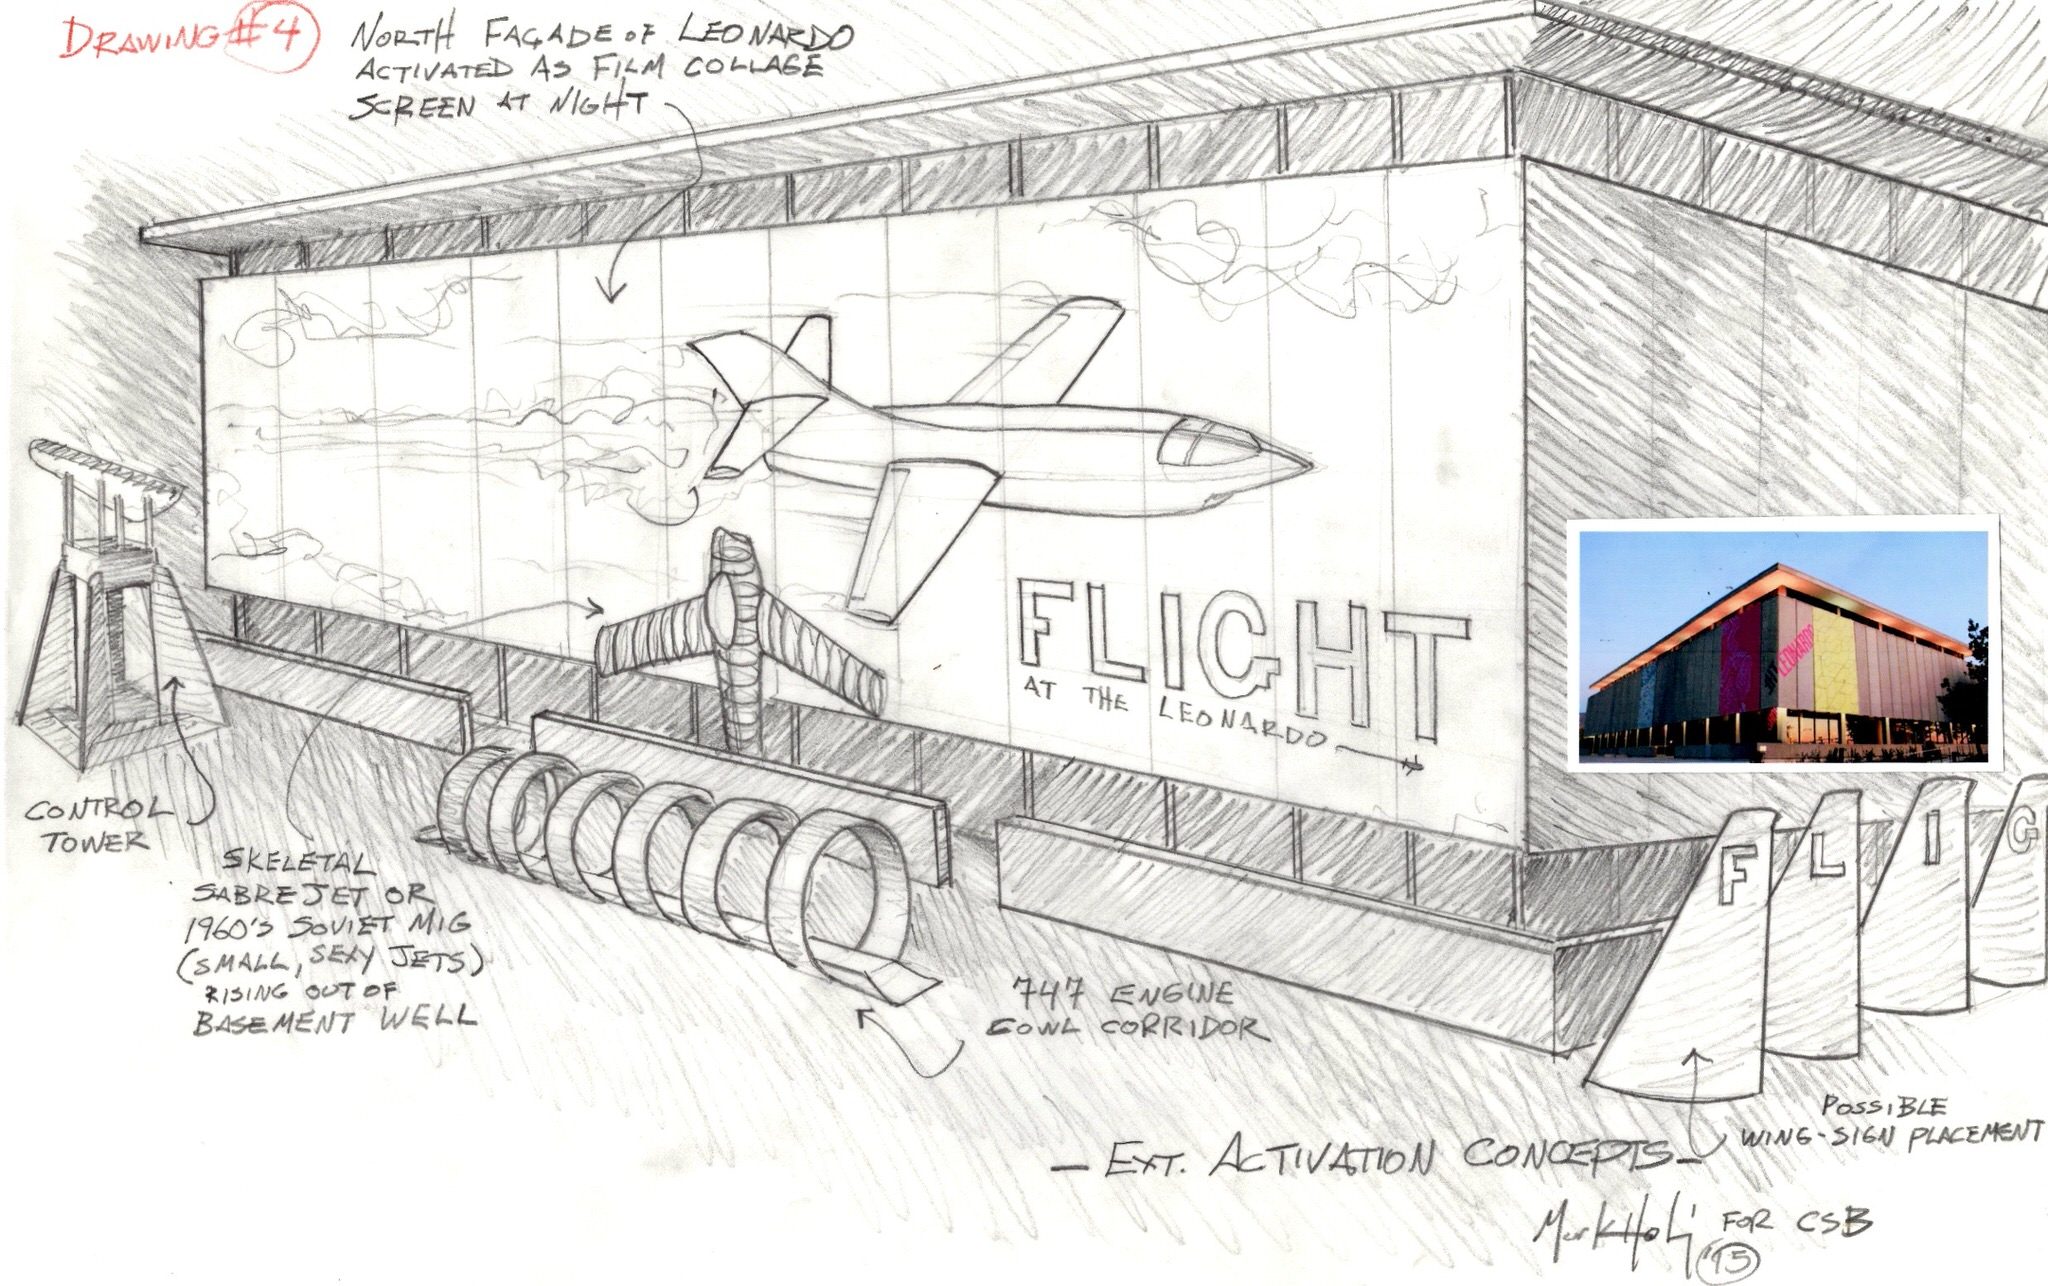 This is the first drawing in a deck of concept sketches I did for the FLIGHT exhibition at the Leonardo in Salt Lake City. This was a blue-sky proposal for the exterior of the building.